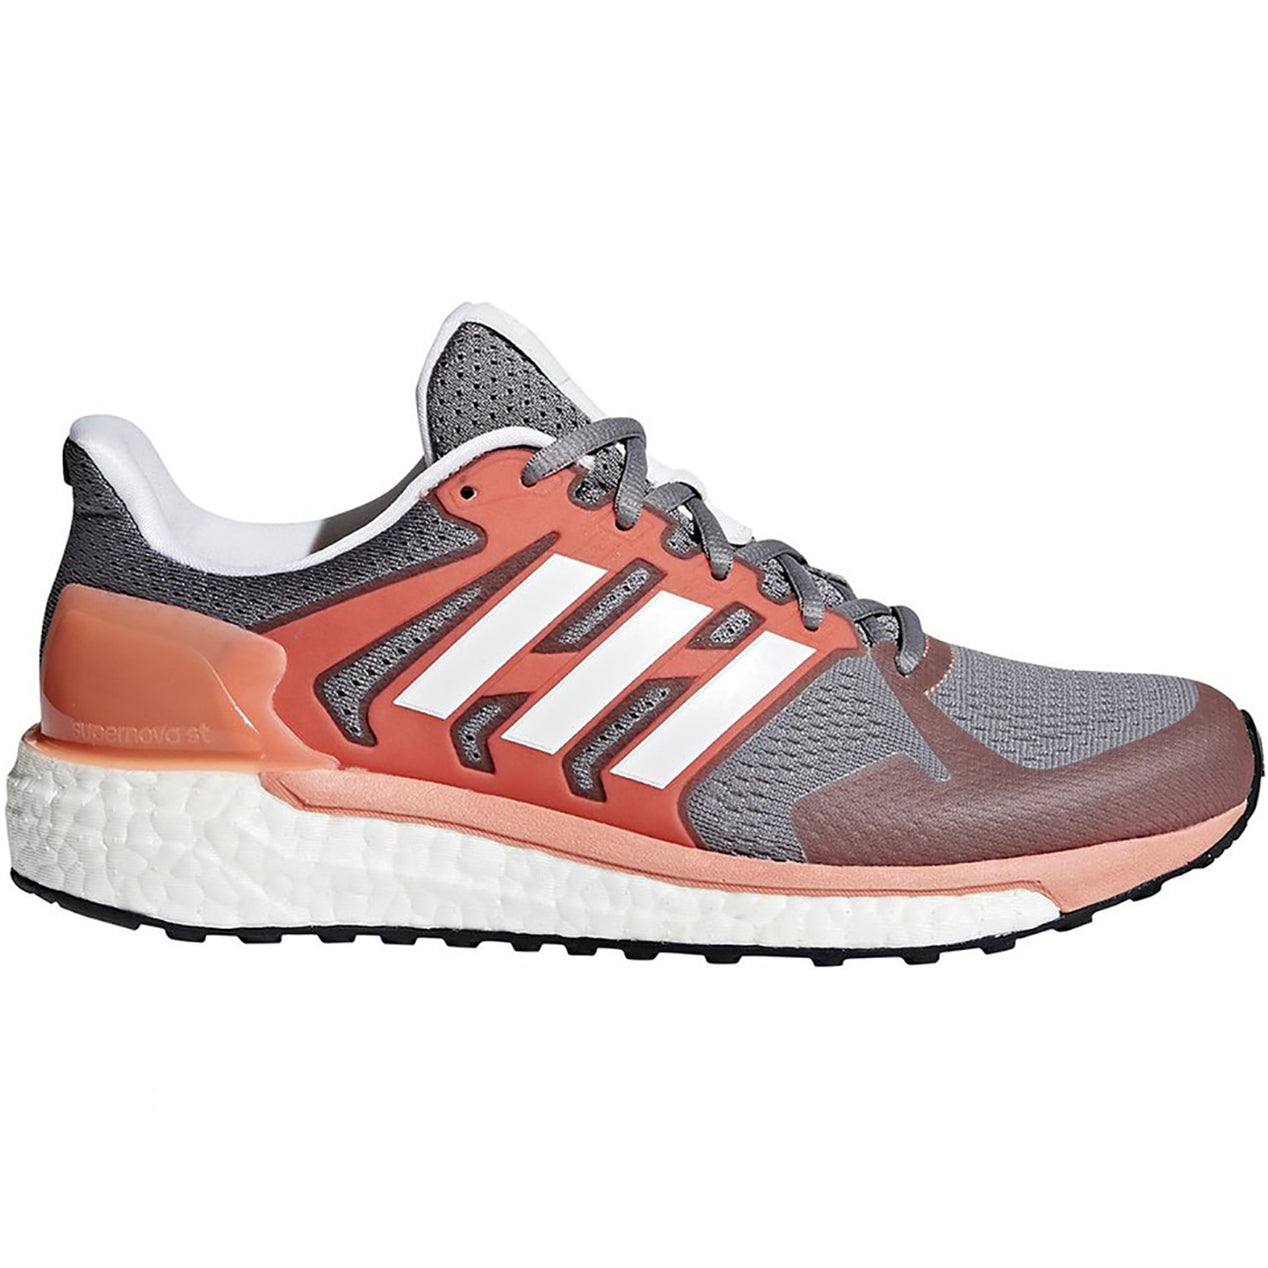 52d715766d80b2 Adidas Supernova St Running Shoes - Women s